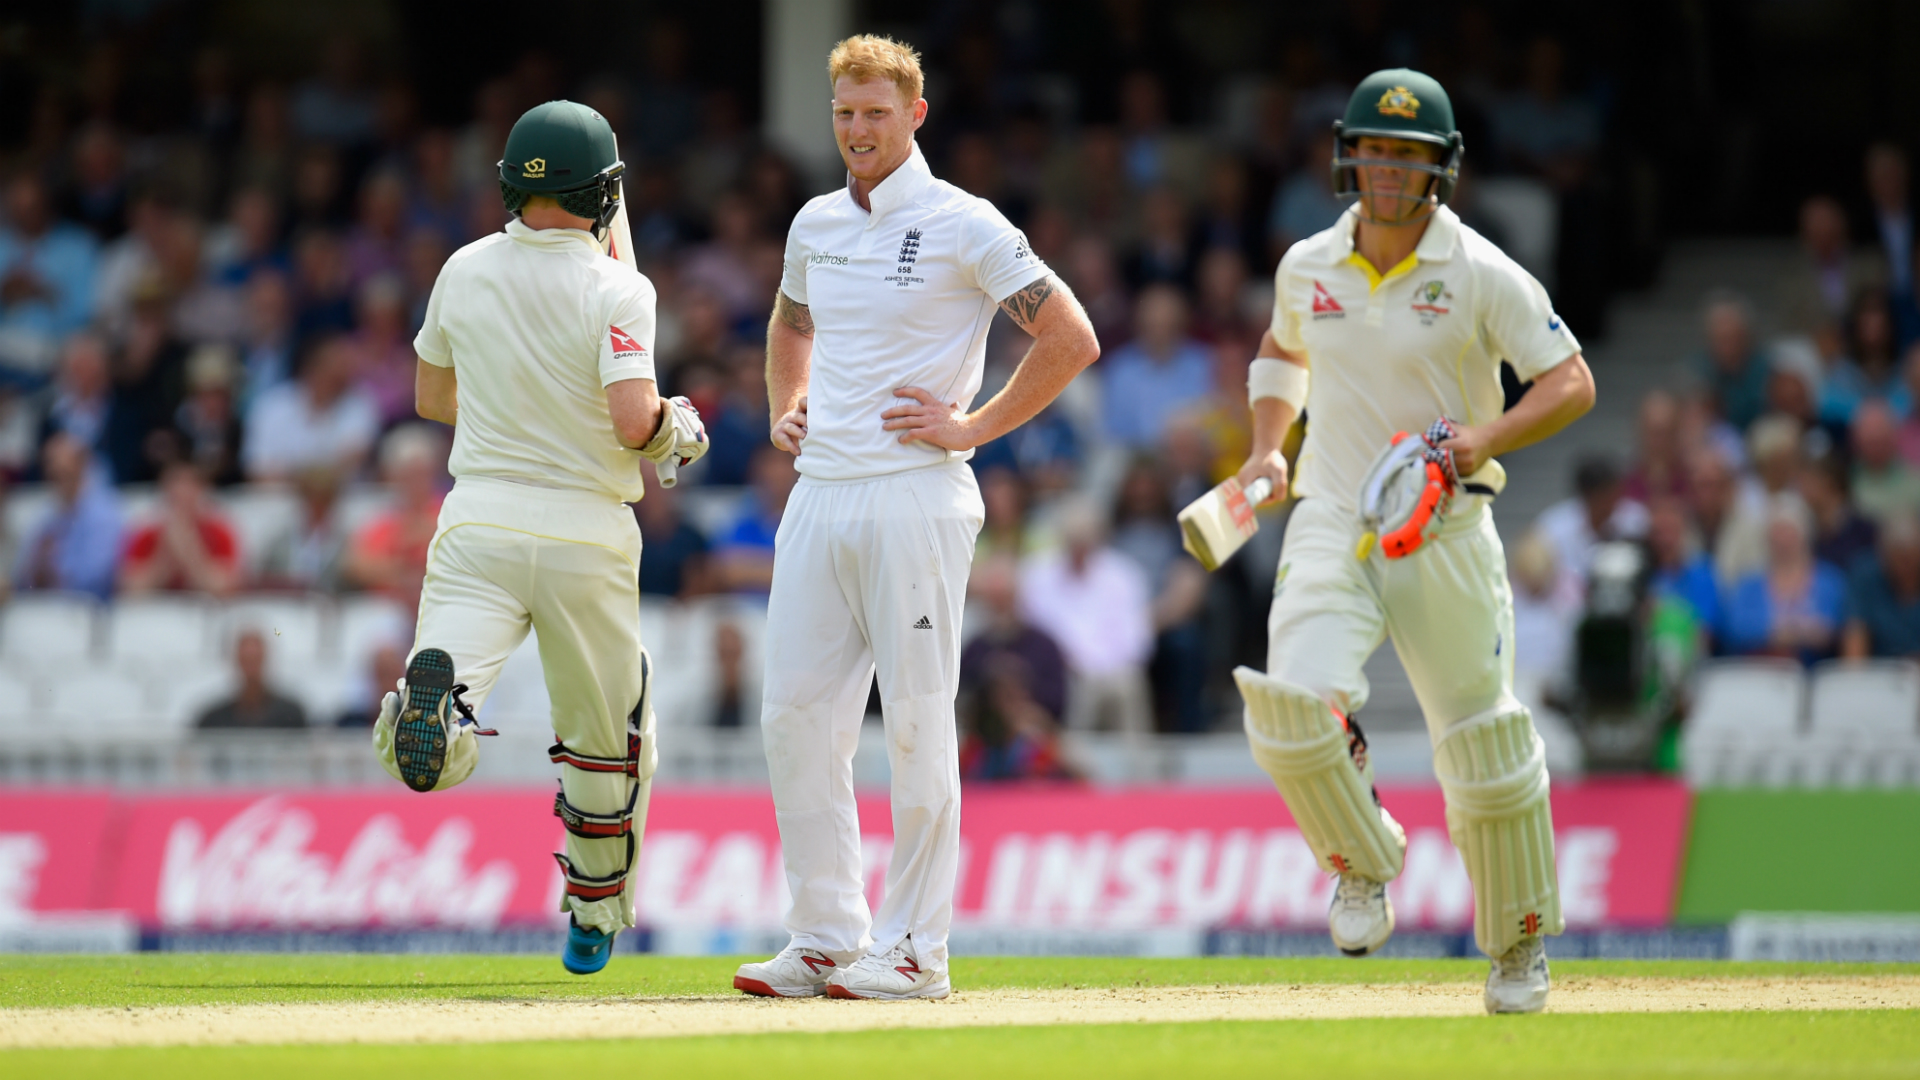 Stokes' Warner comments a way to boost book sales, claims Paine